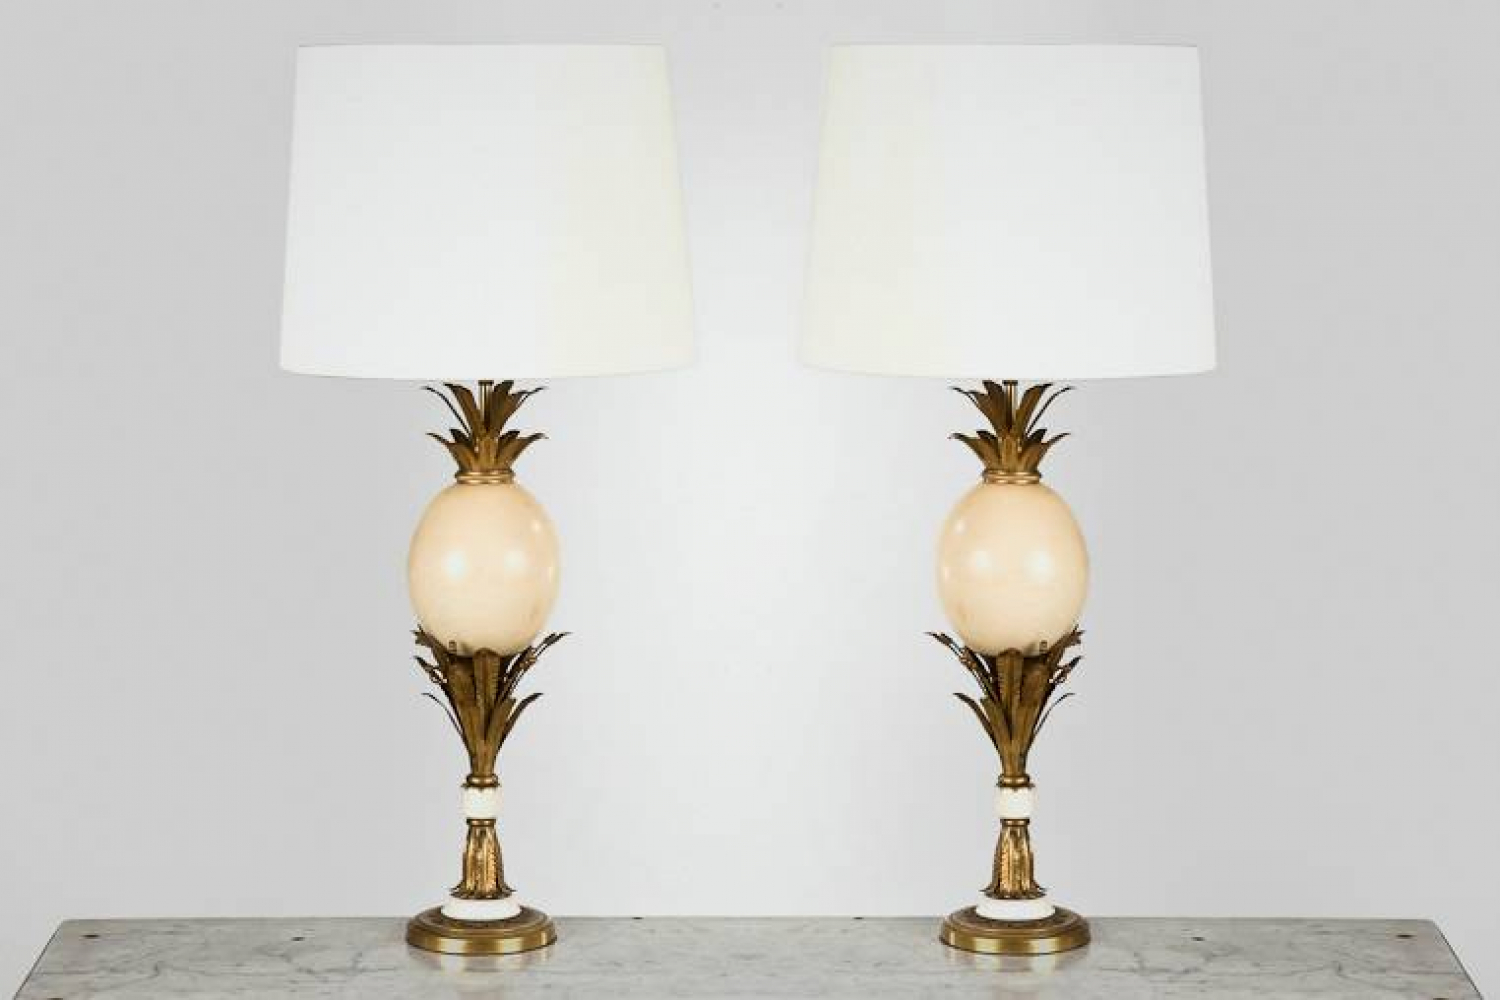 Pair of French Ostrich Egg Lamps